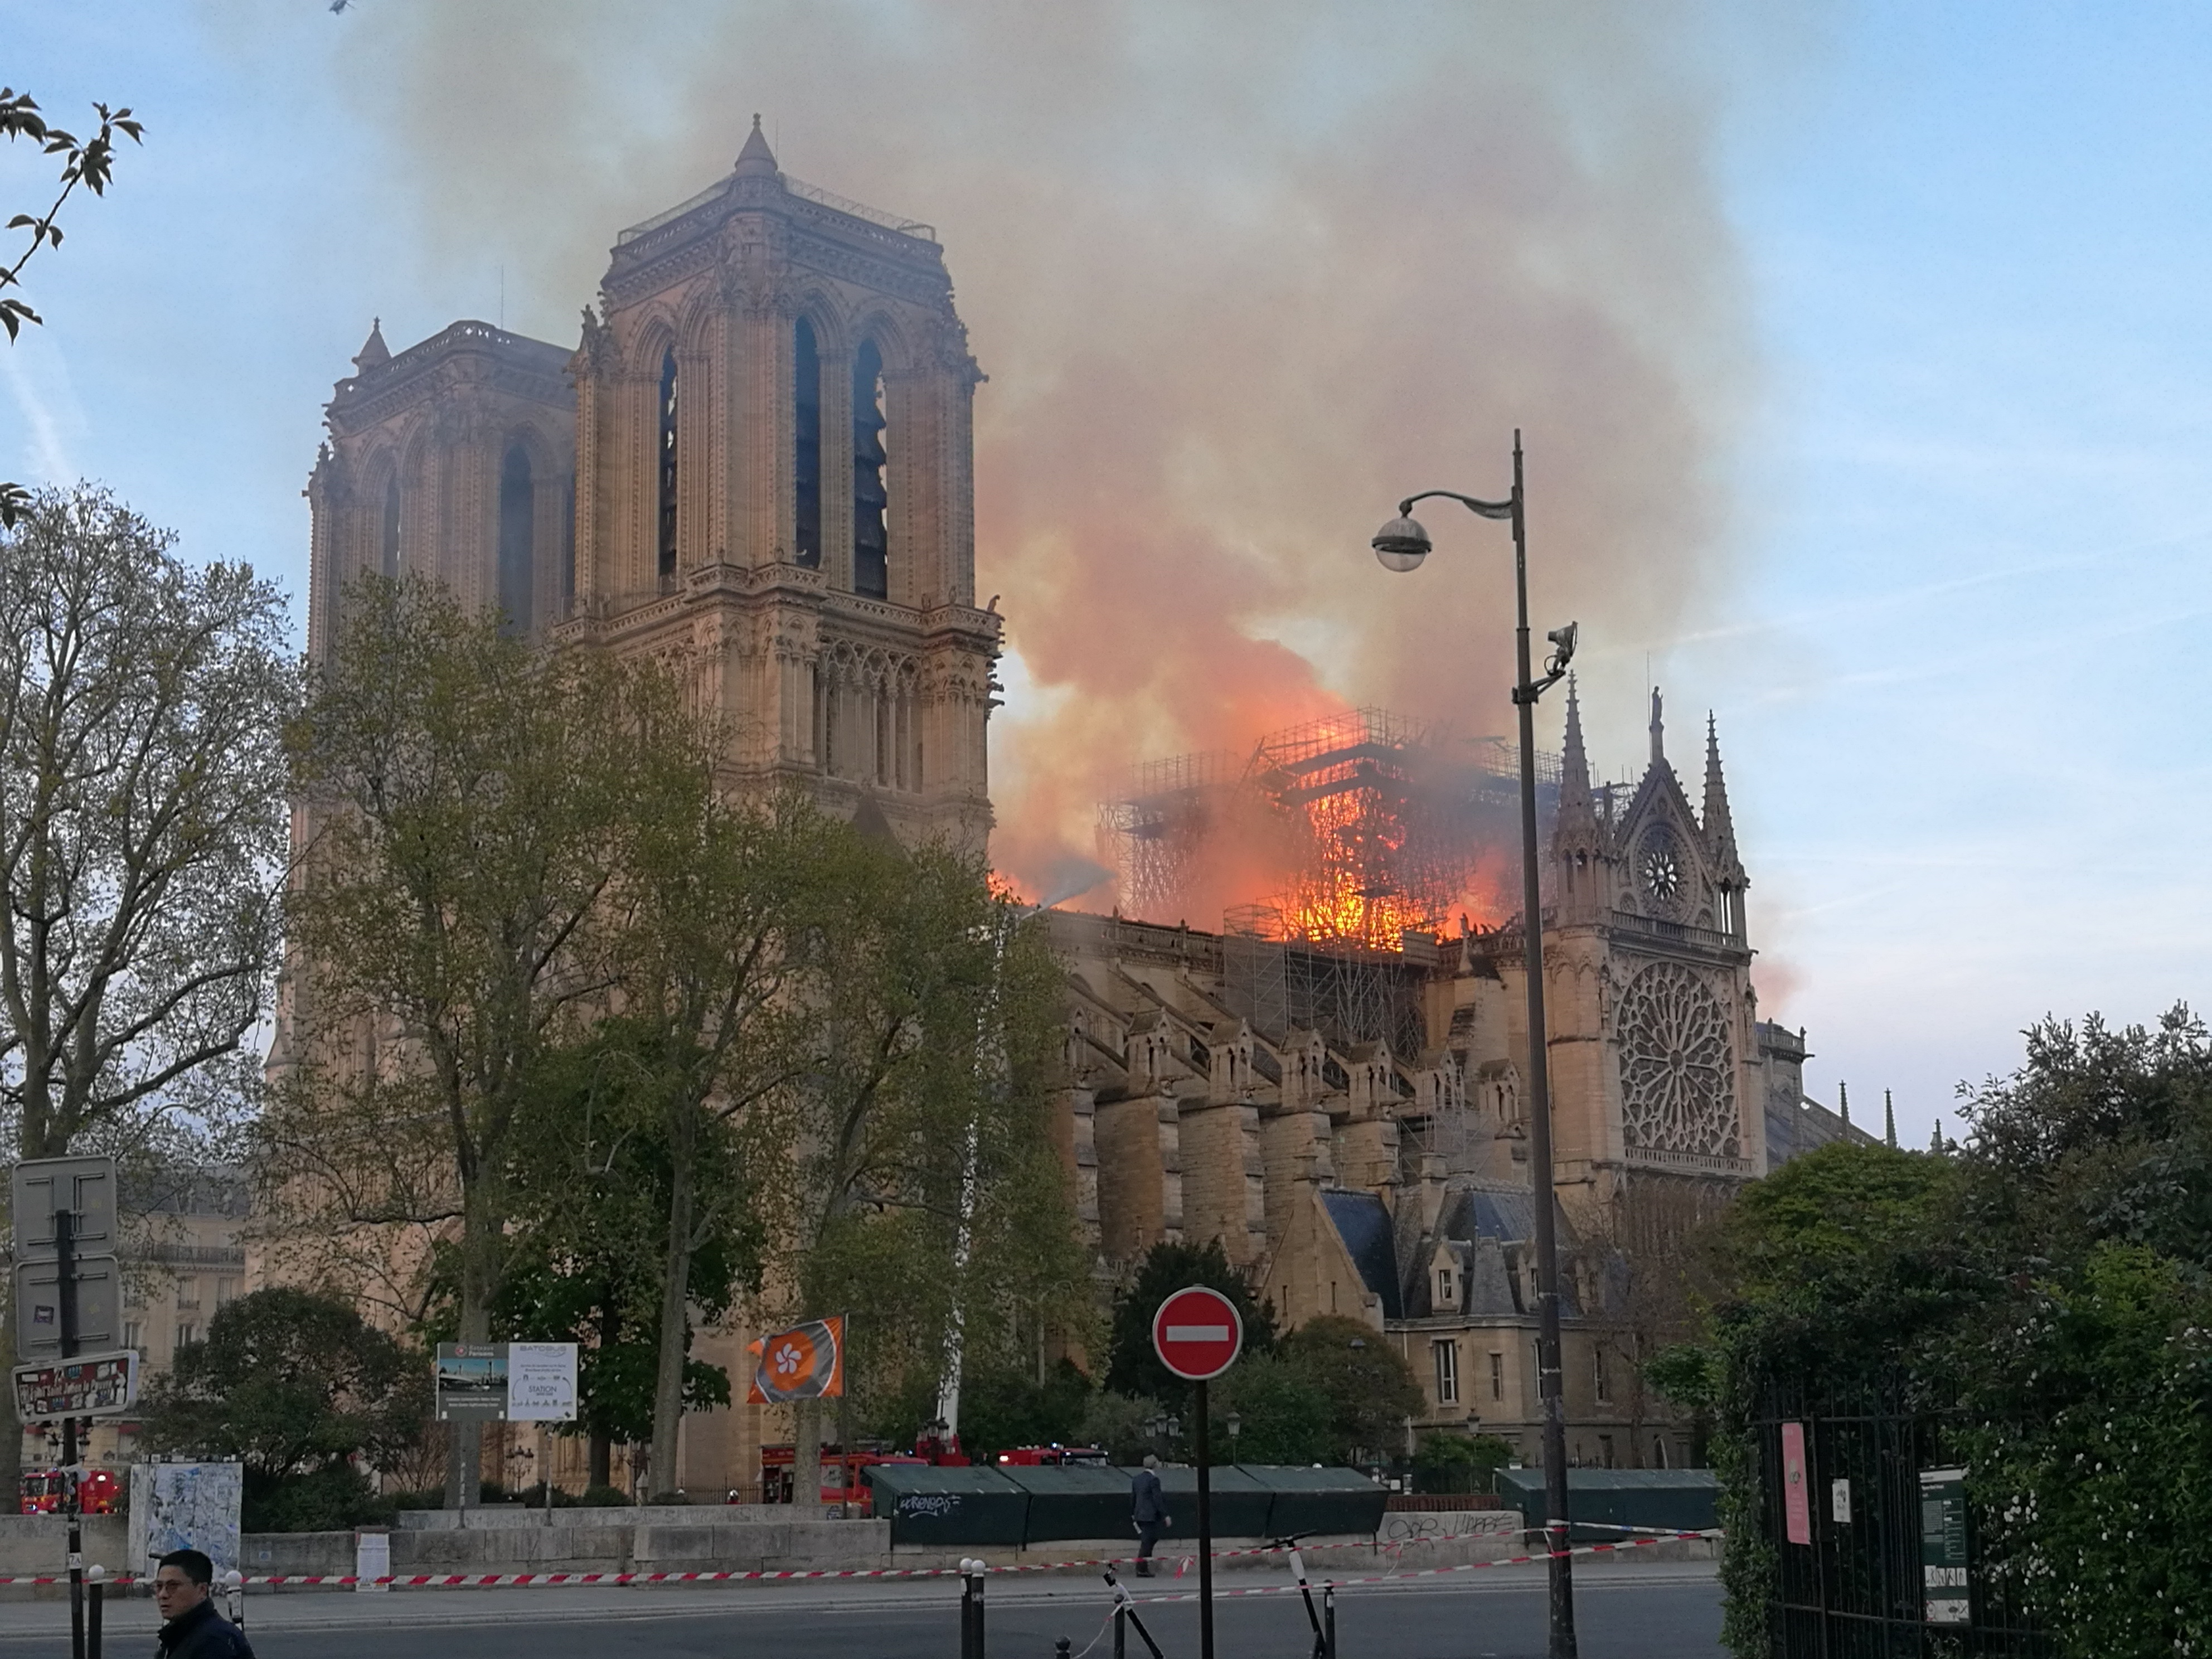 The 850-year-old monument was engulfed by flames, destroying the iconic spire and roof. Credit: PA